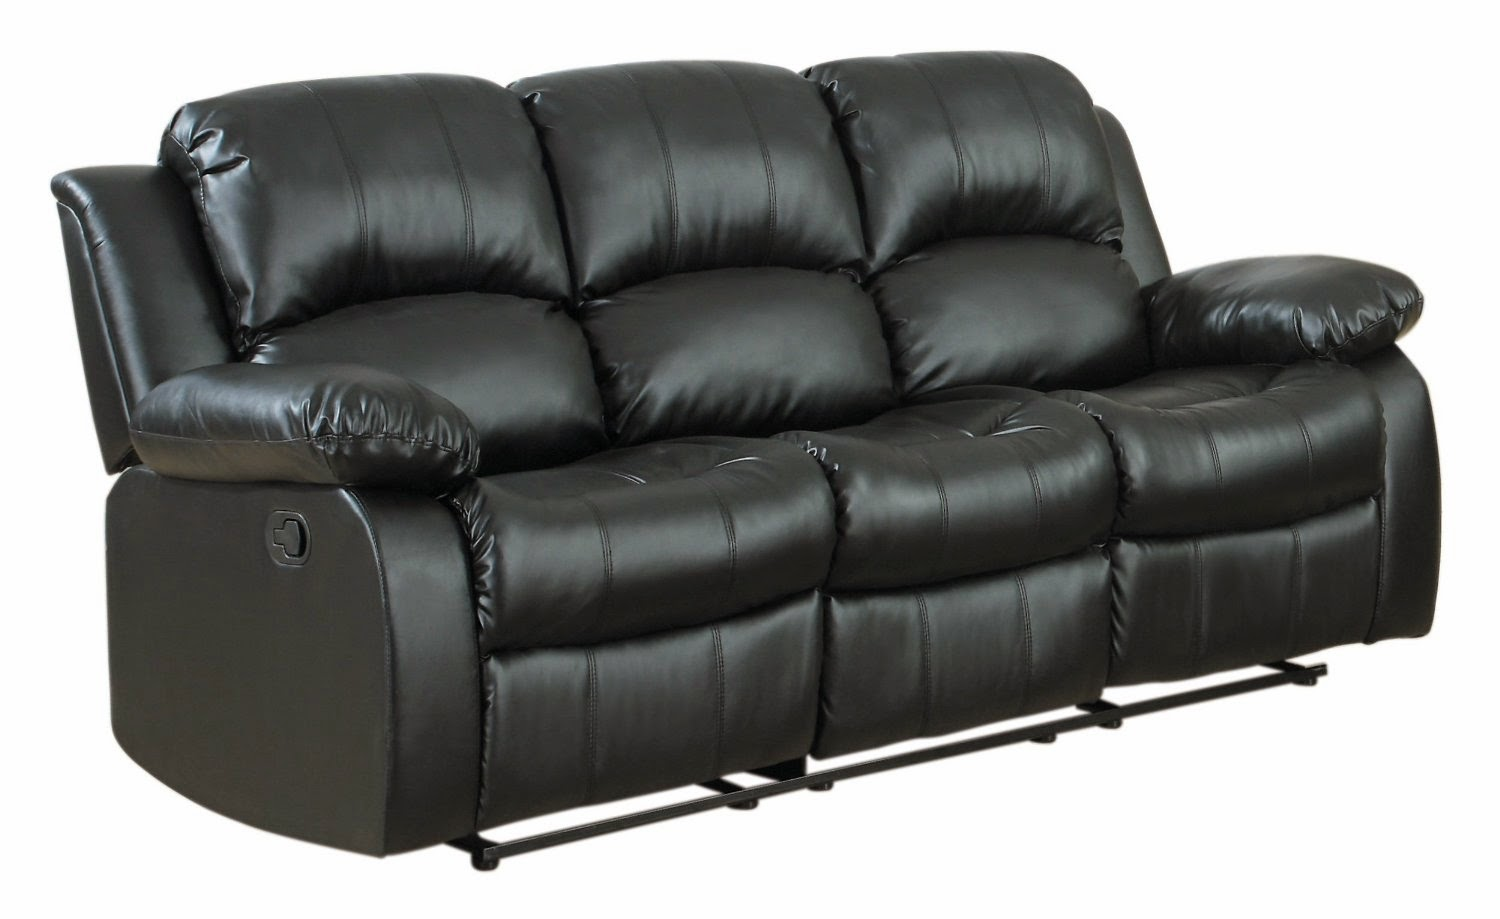 flexsteel leather sofa reviews material texture the best power reclining